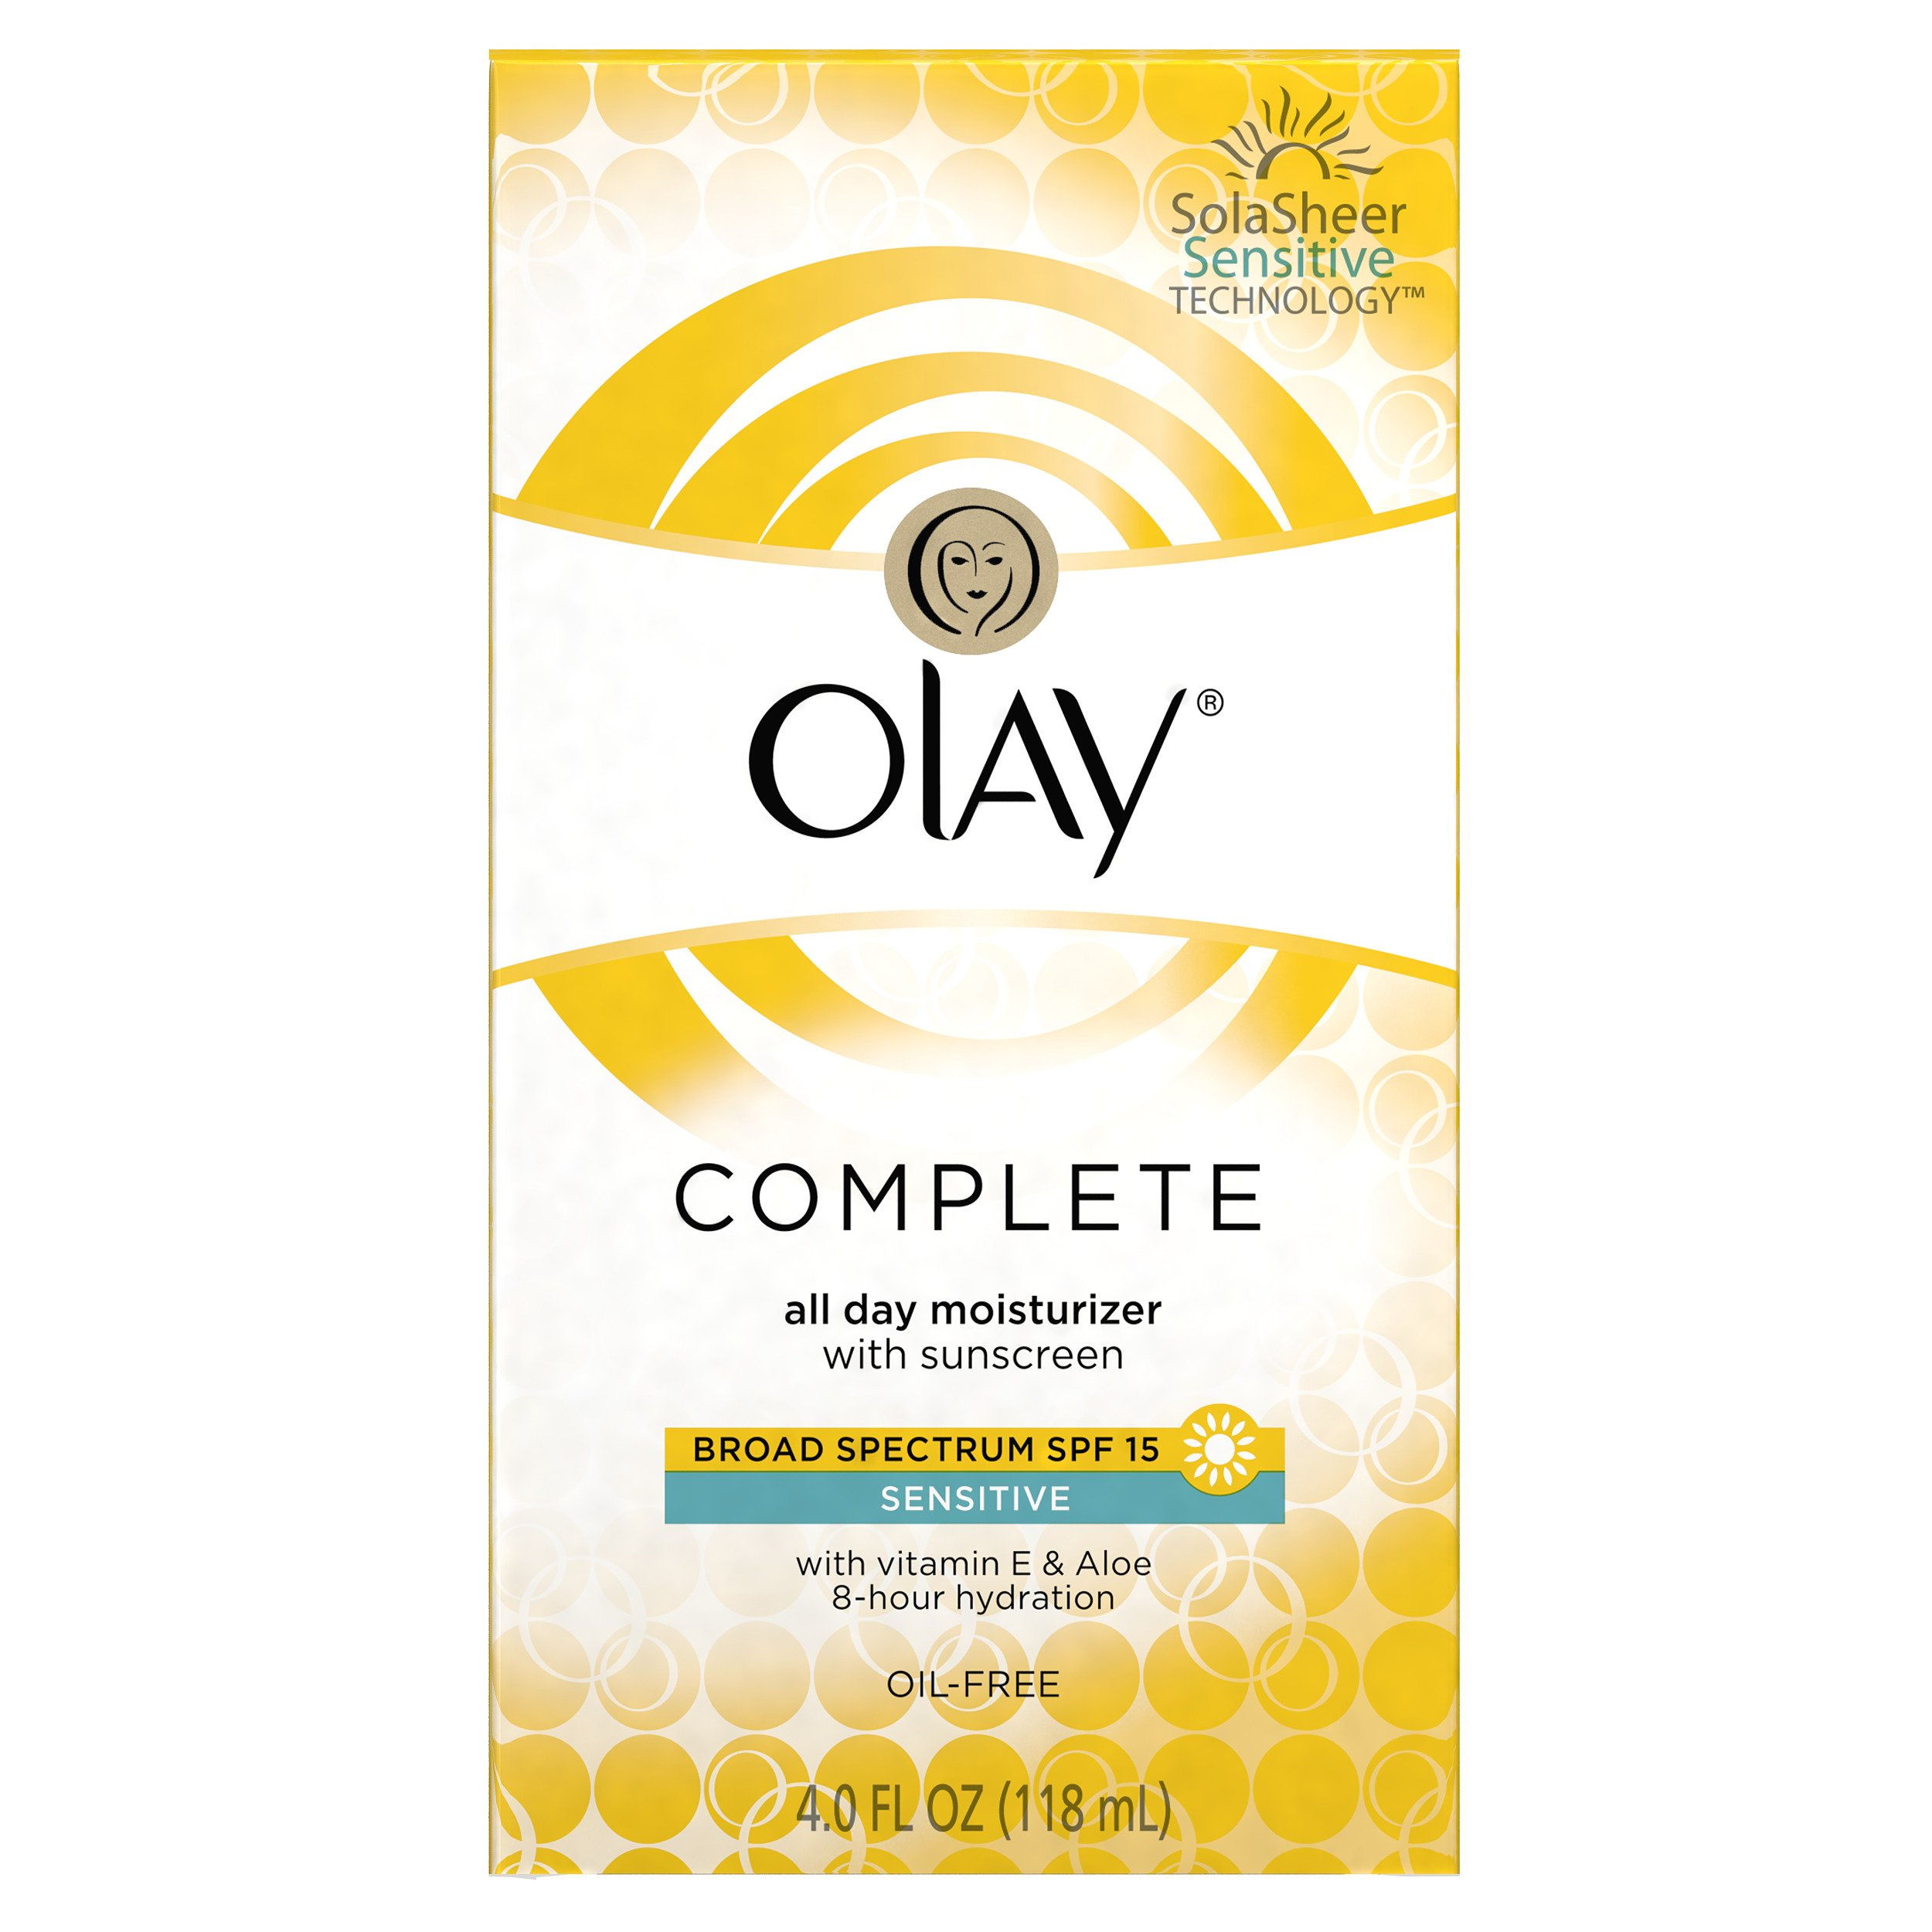 Olay Complete All Day Moisturizer With Sunscreen Broad Spectrum SPF 15 - Sensitive, 4 fl